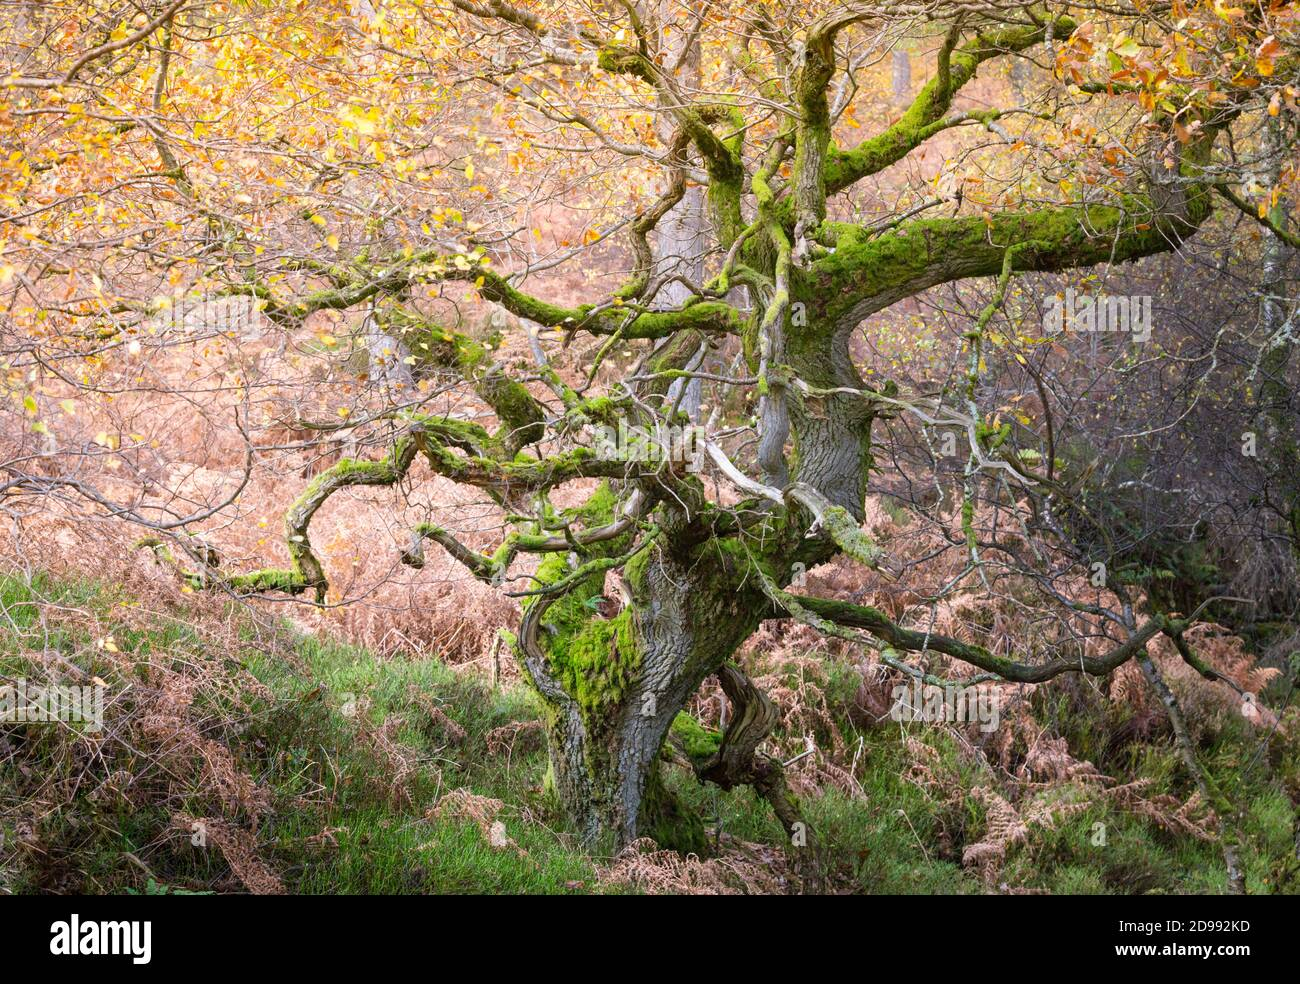 Twisted ancient oak trees in a woodland in Autumn time, with golden leaves and bright green moss on the tree trunks and branches. Stock Photo